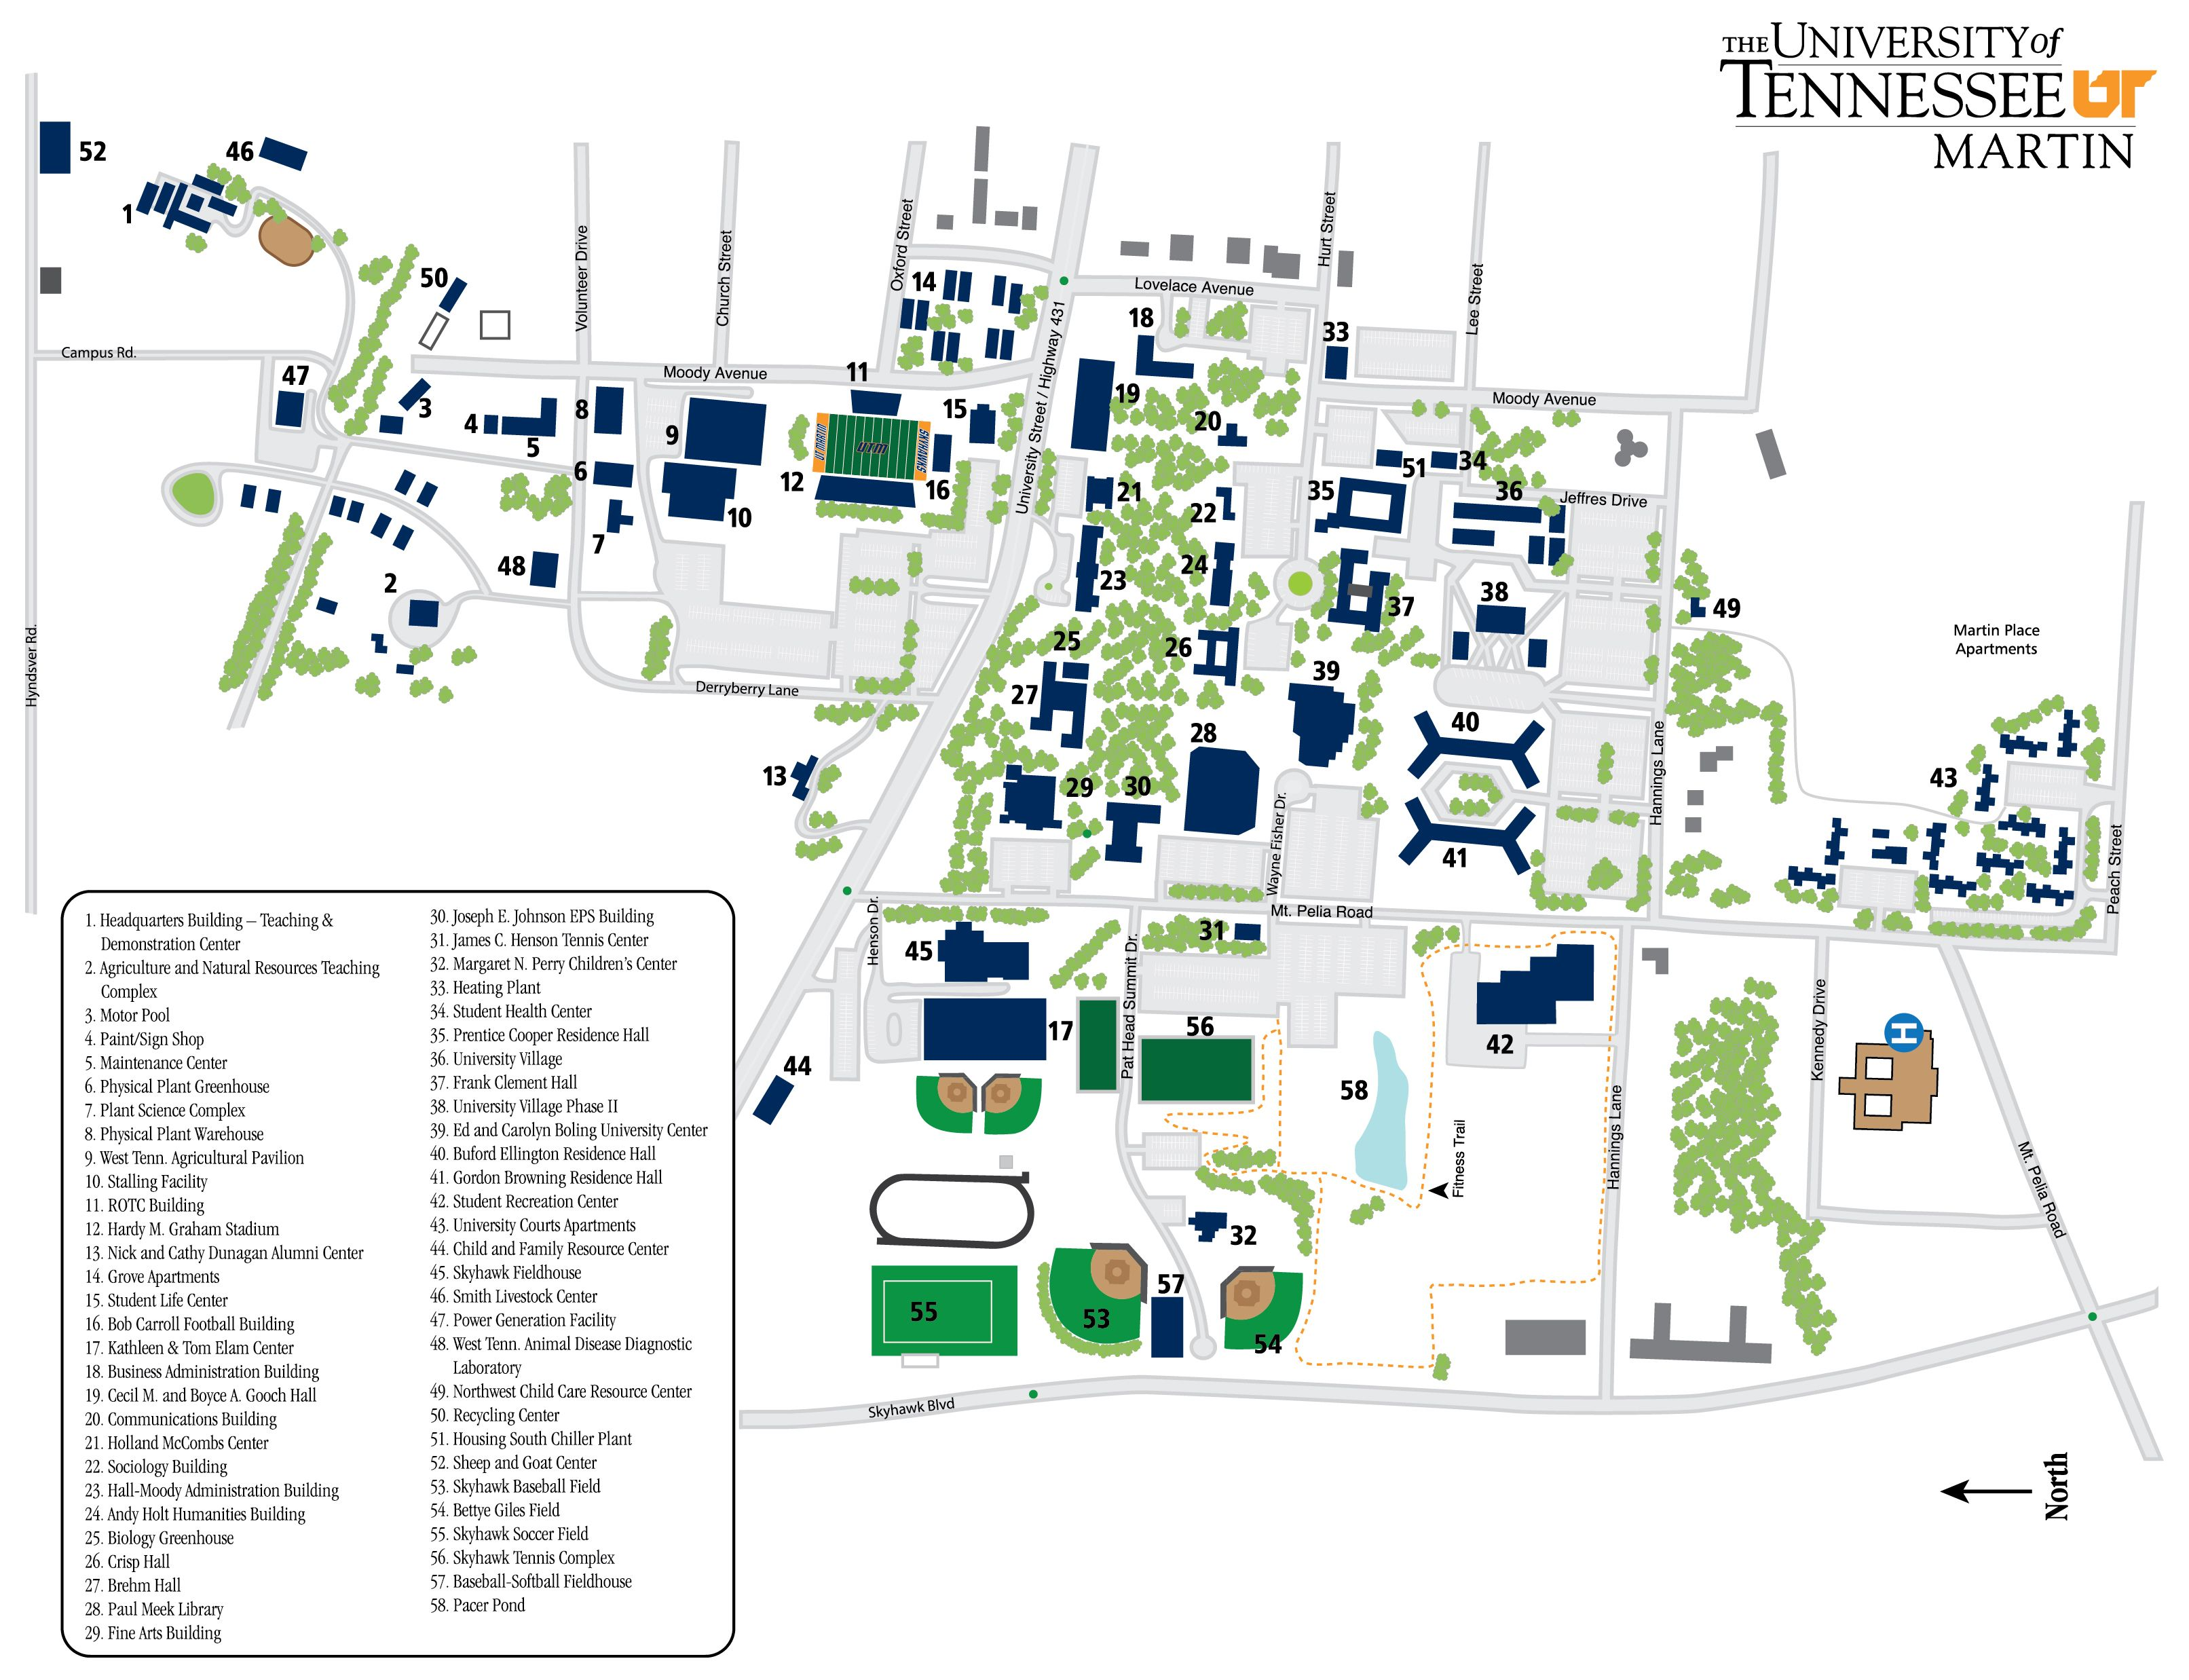 Ut Martin Campus Map Discover Ut Martin Pinterest Campus Map